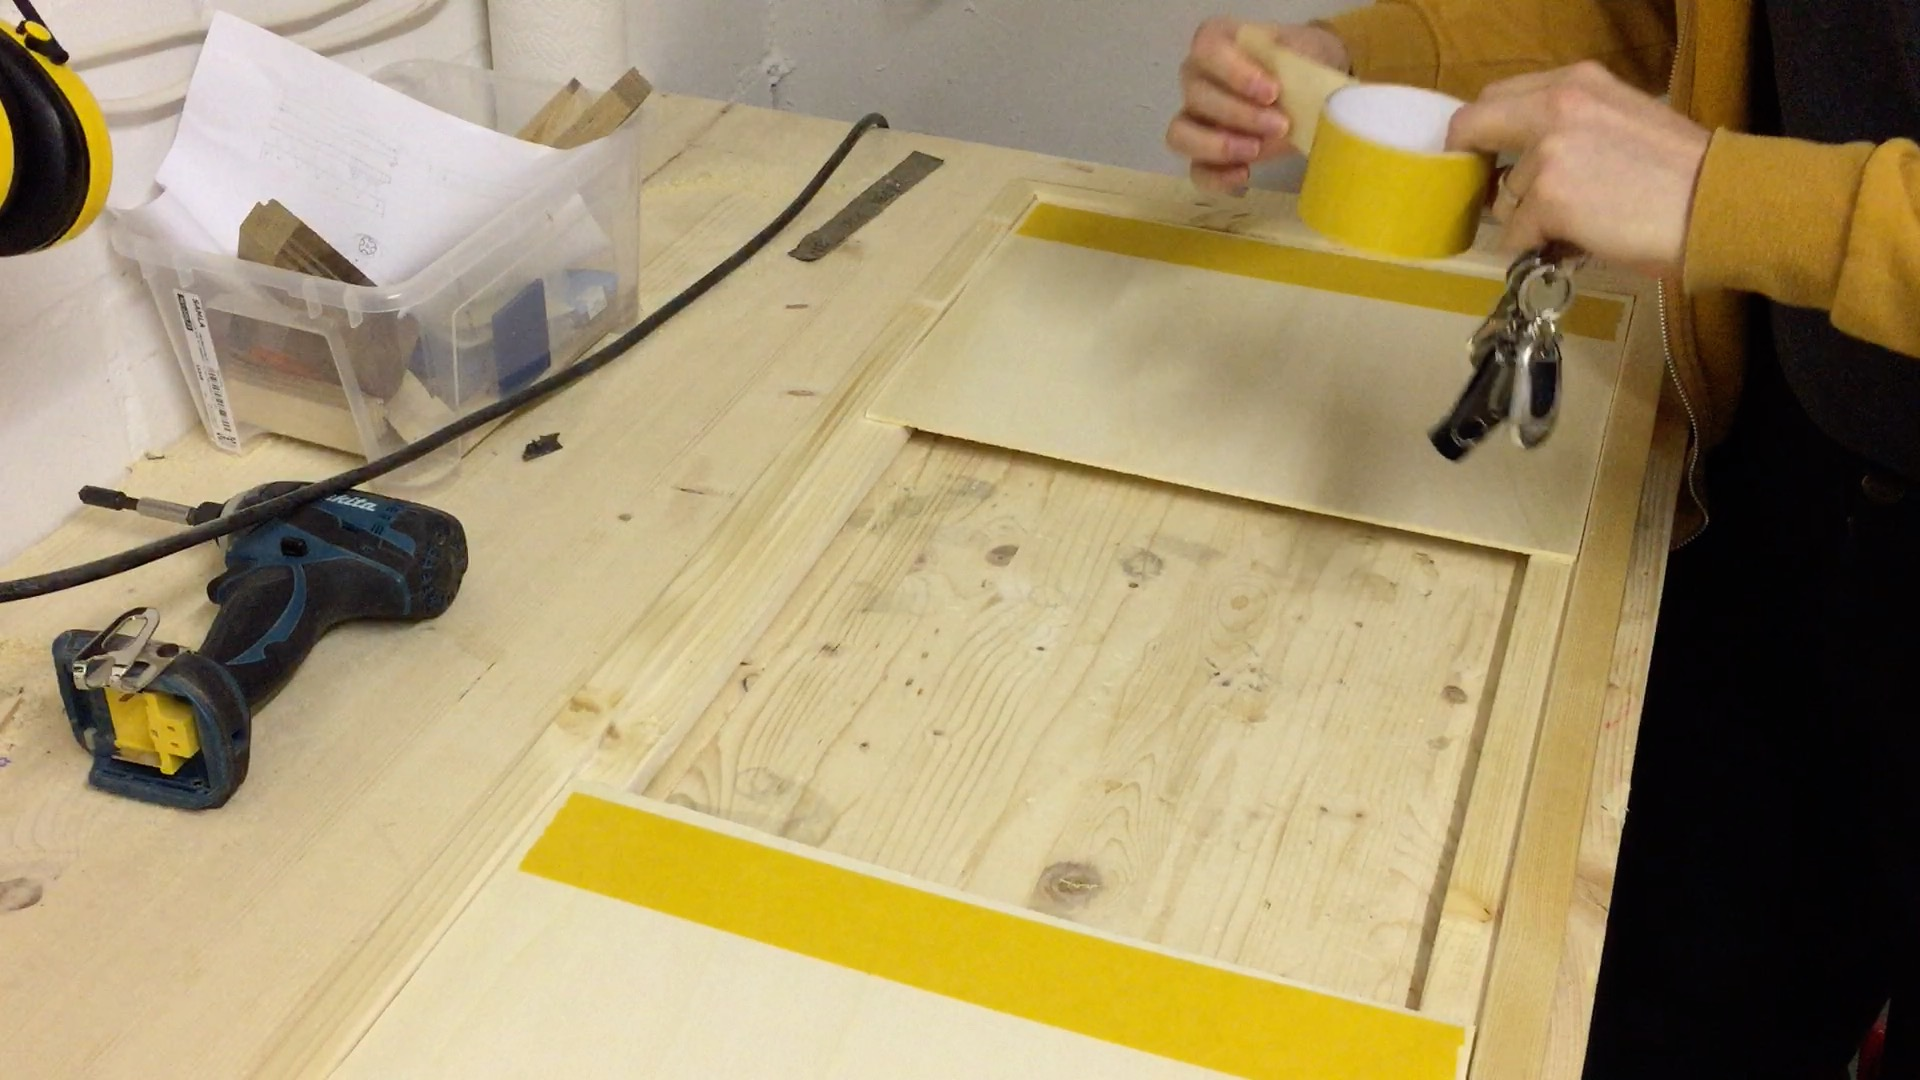 Adding the double sided tape